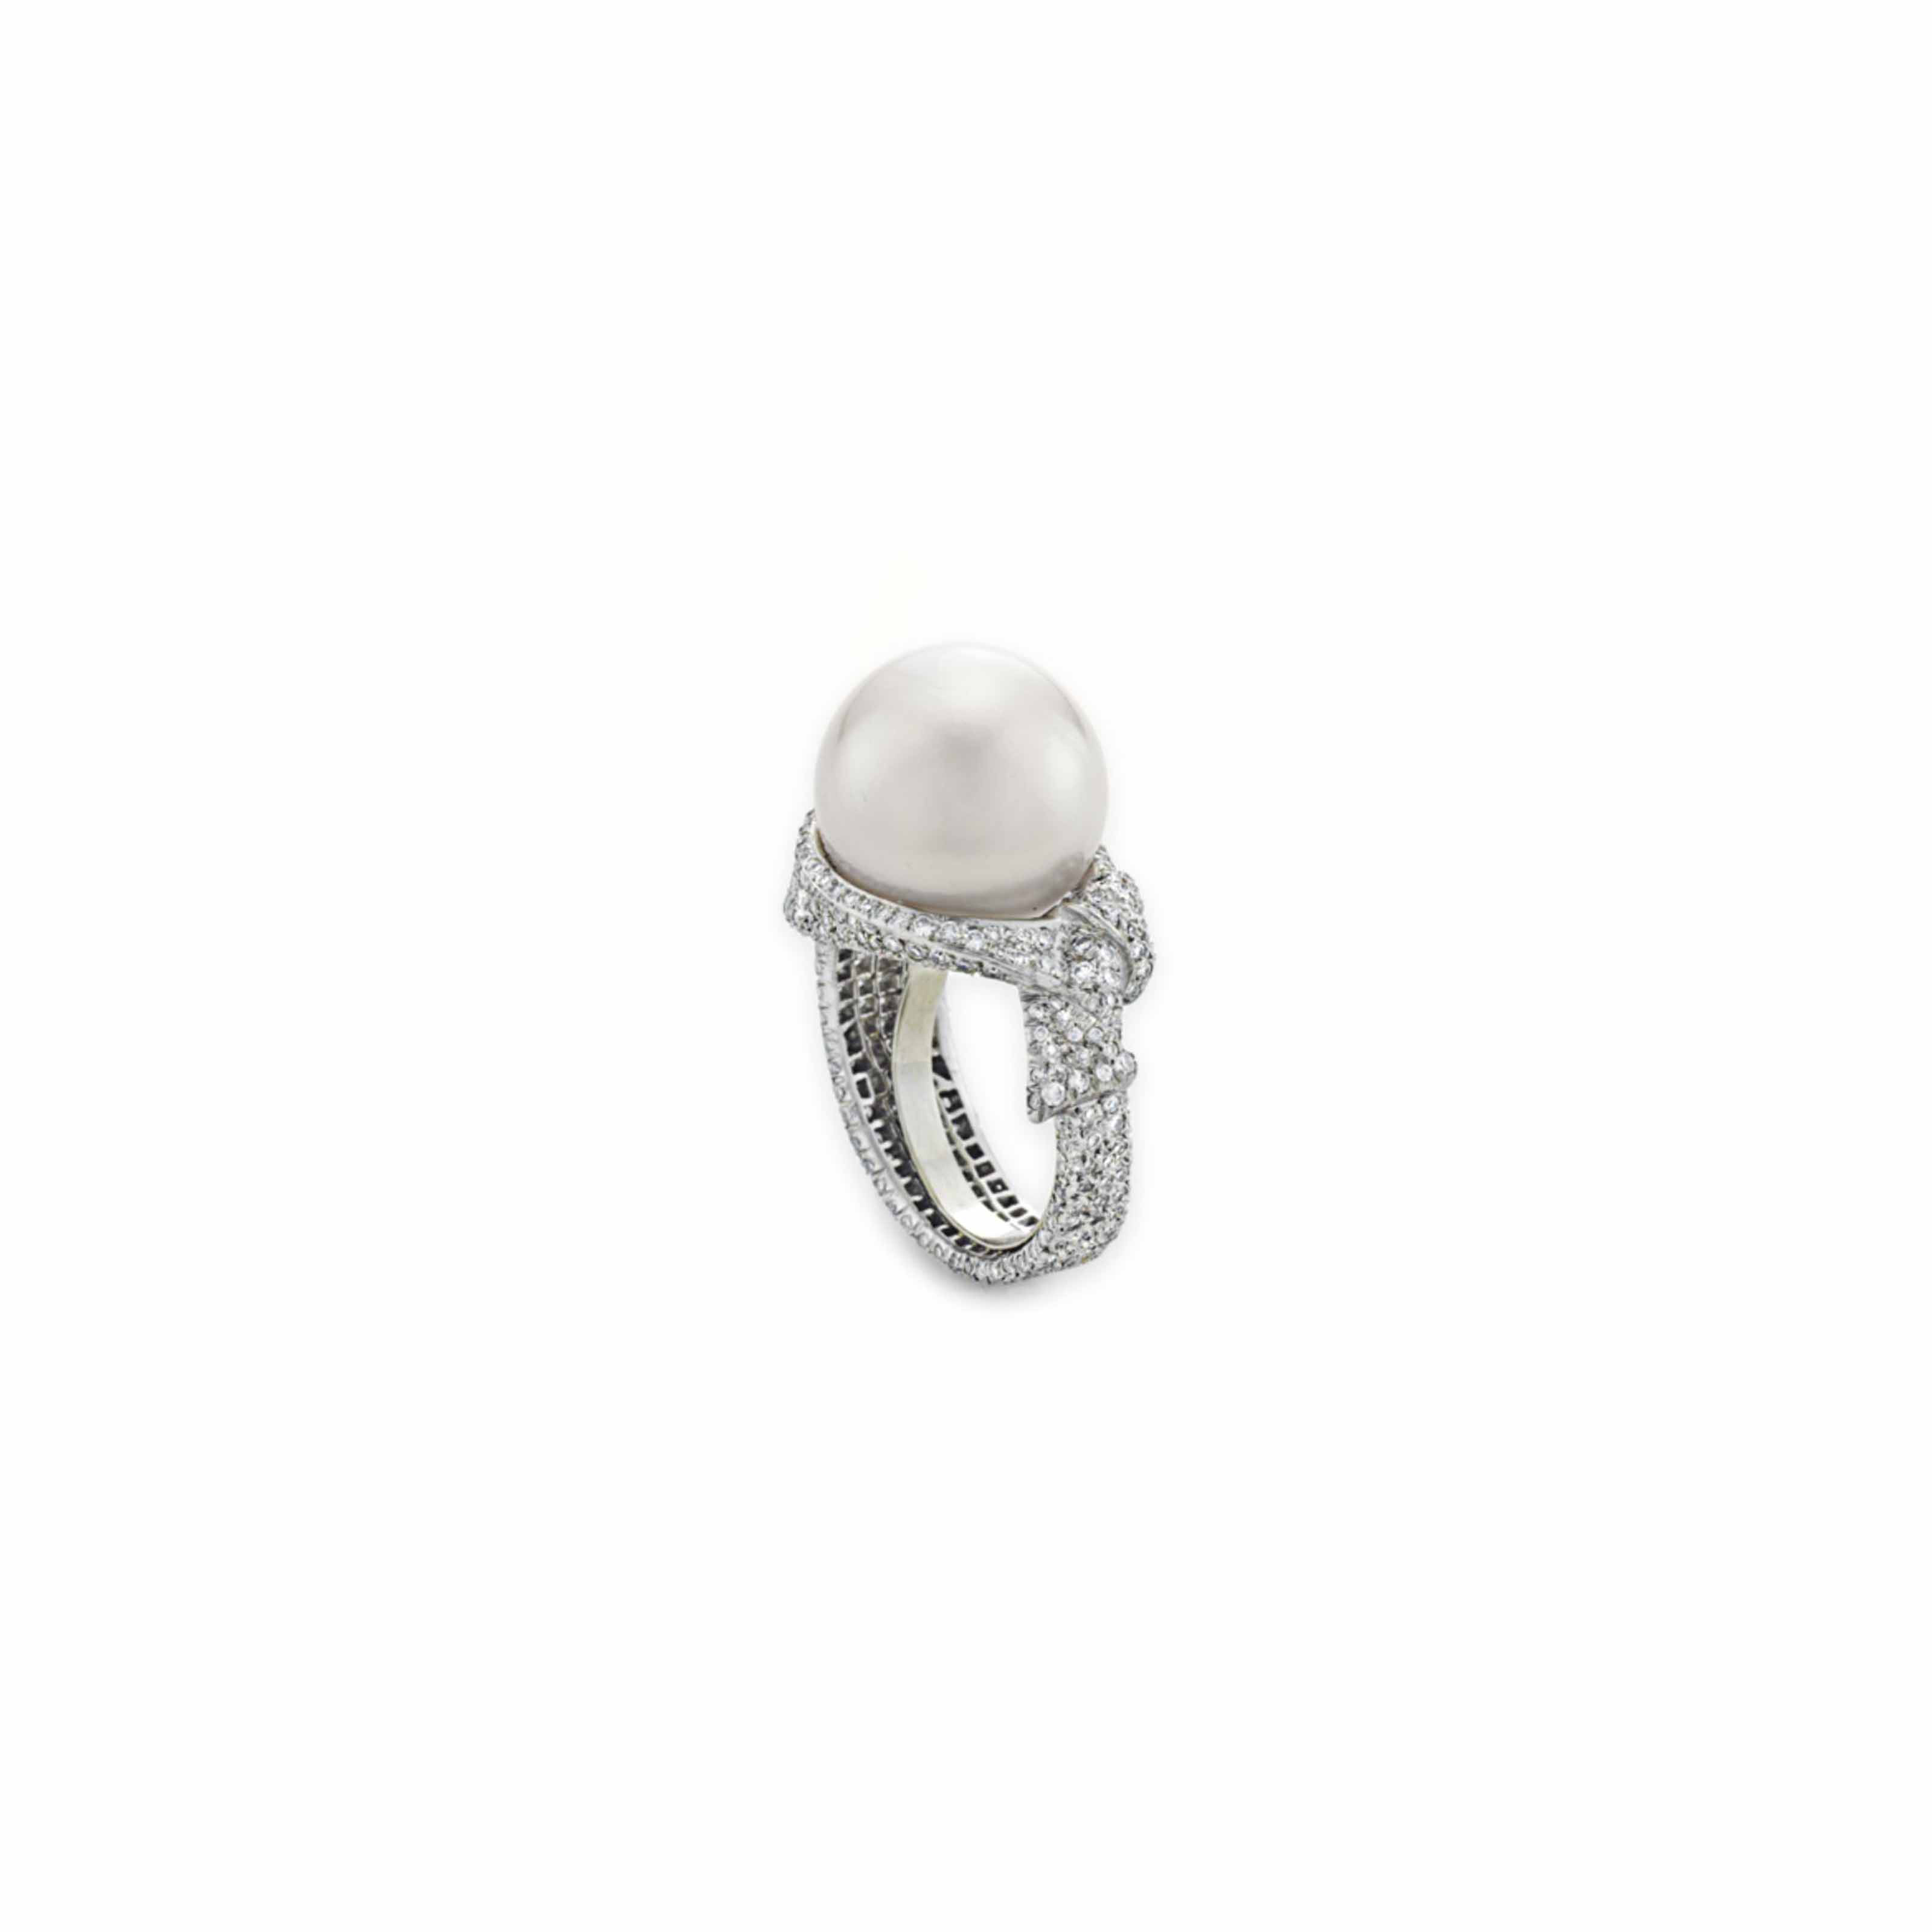 A PEARL, DIAMOND, AND PLATINUM RING, BY ANGELA CUMMINGS, TIFFANY & CO.